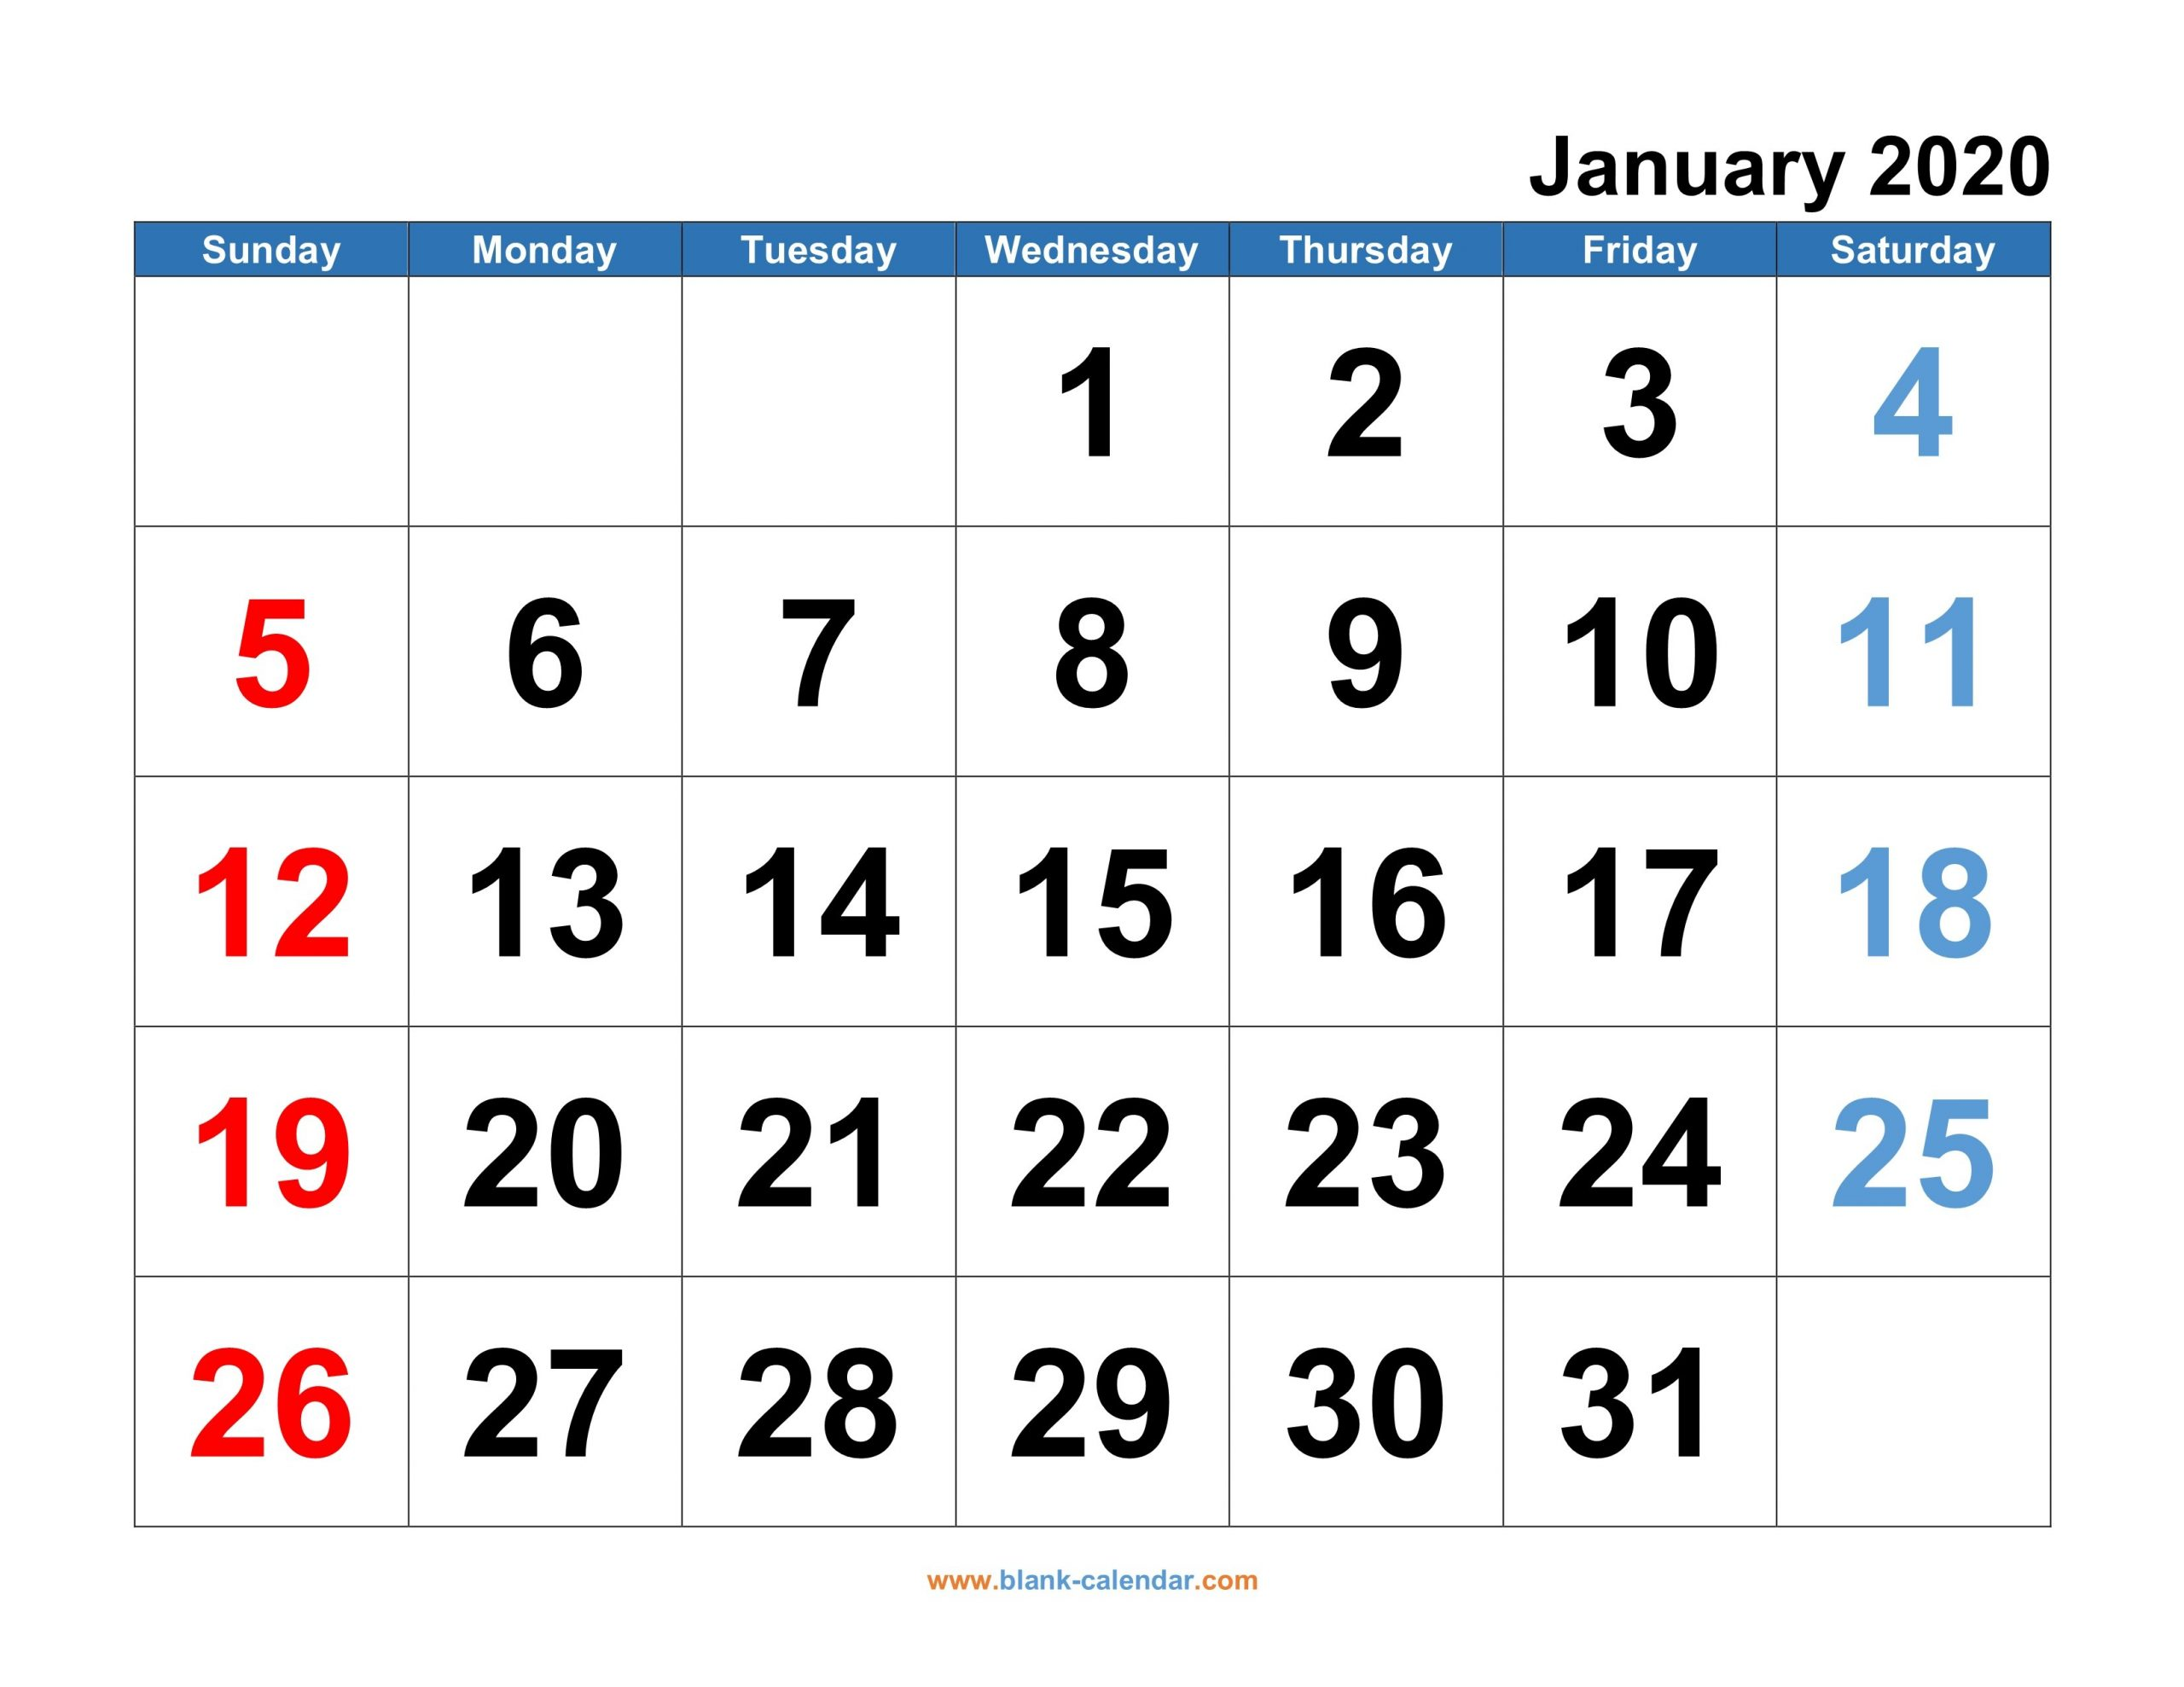 Monthly Calendar 2020   Free Download, Editable And Printable Monthly Calendars You Can Edit